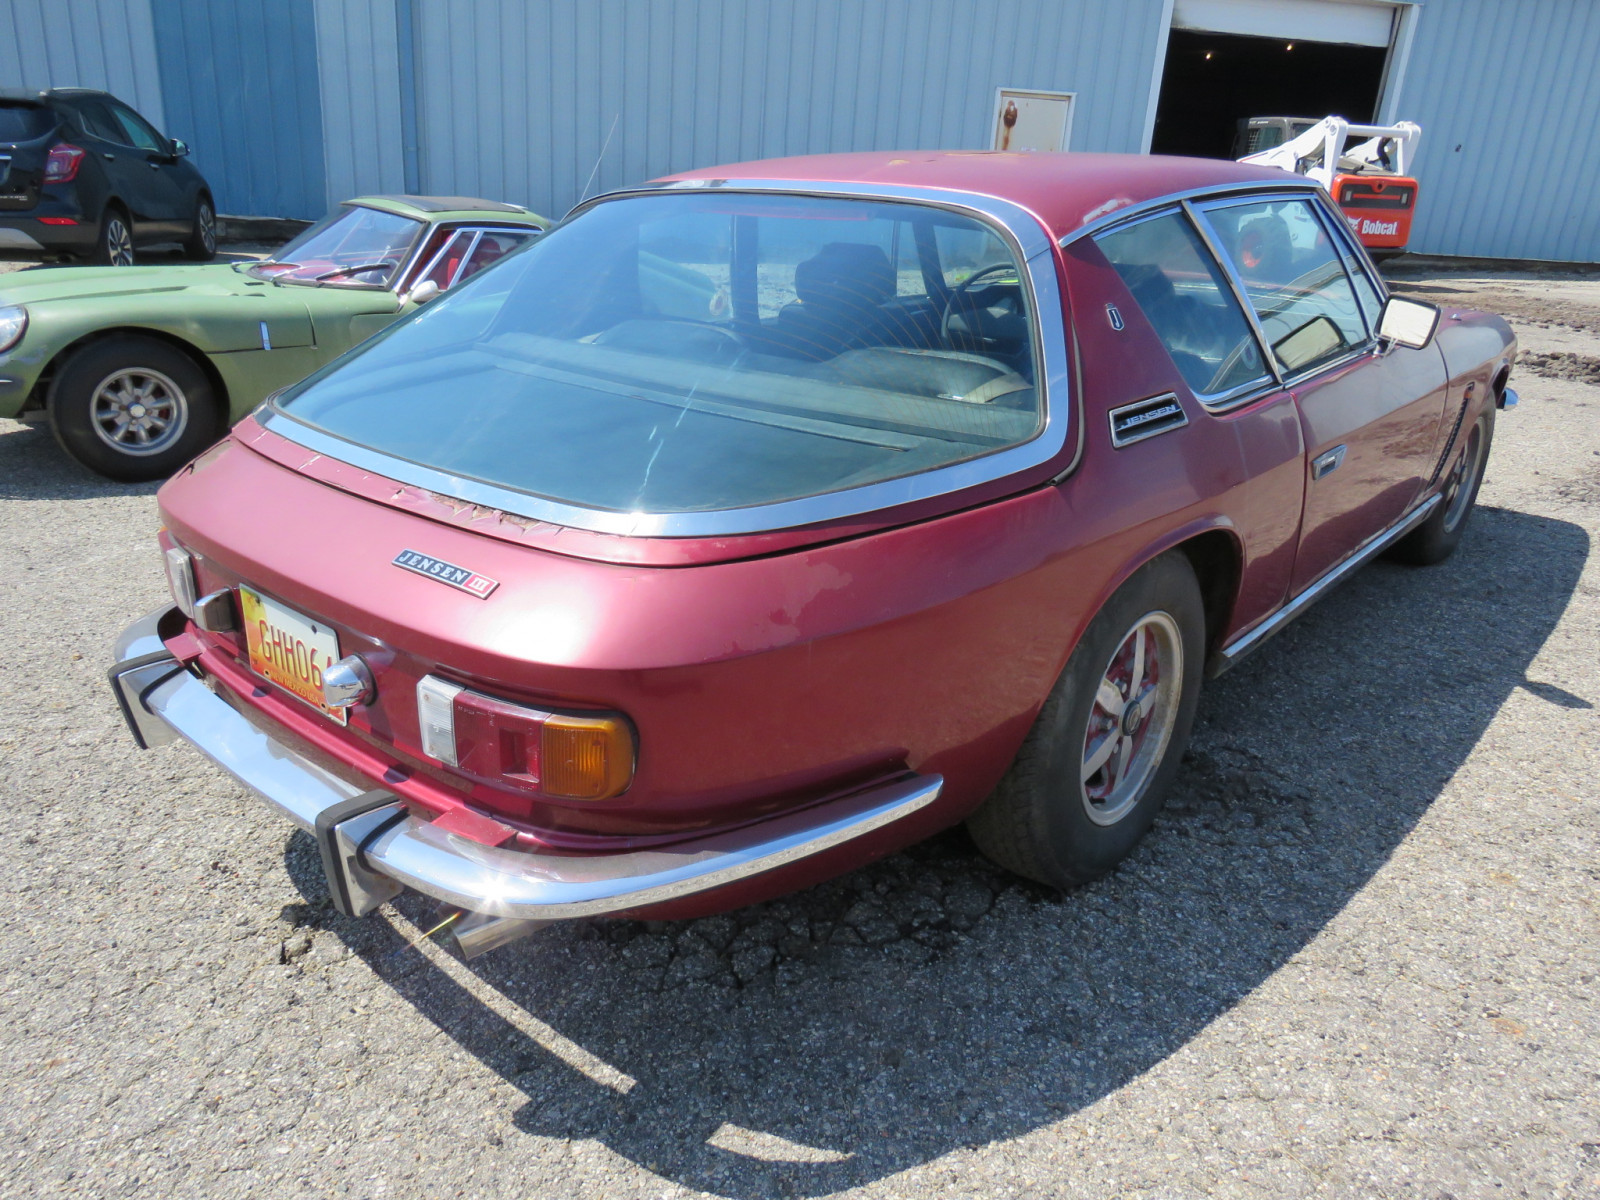 1974 Jensen Interceptor II 2dr Sedan - Image 6